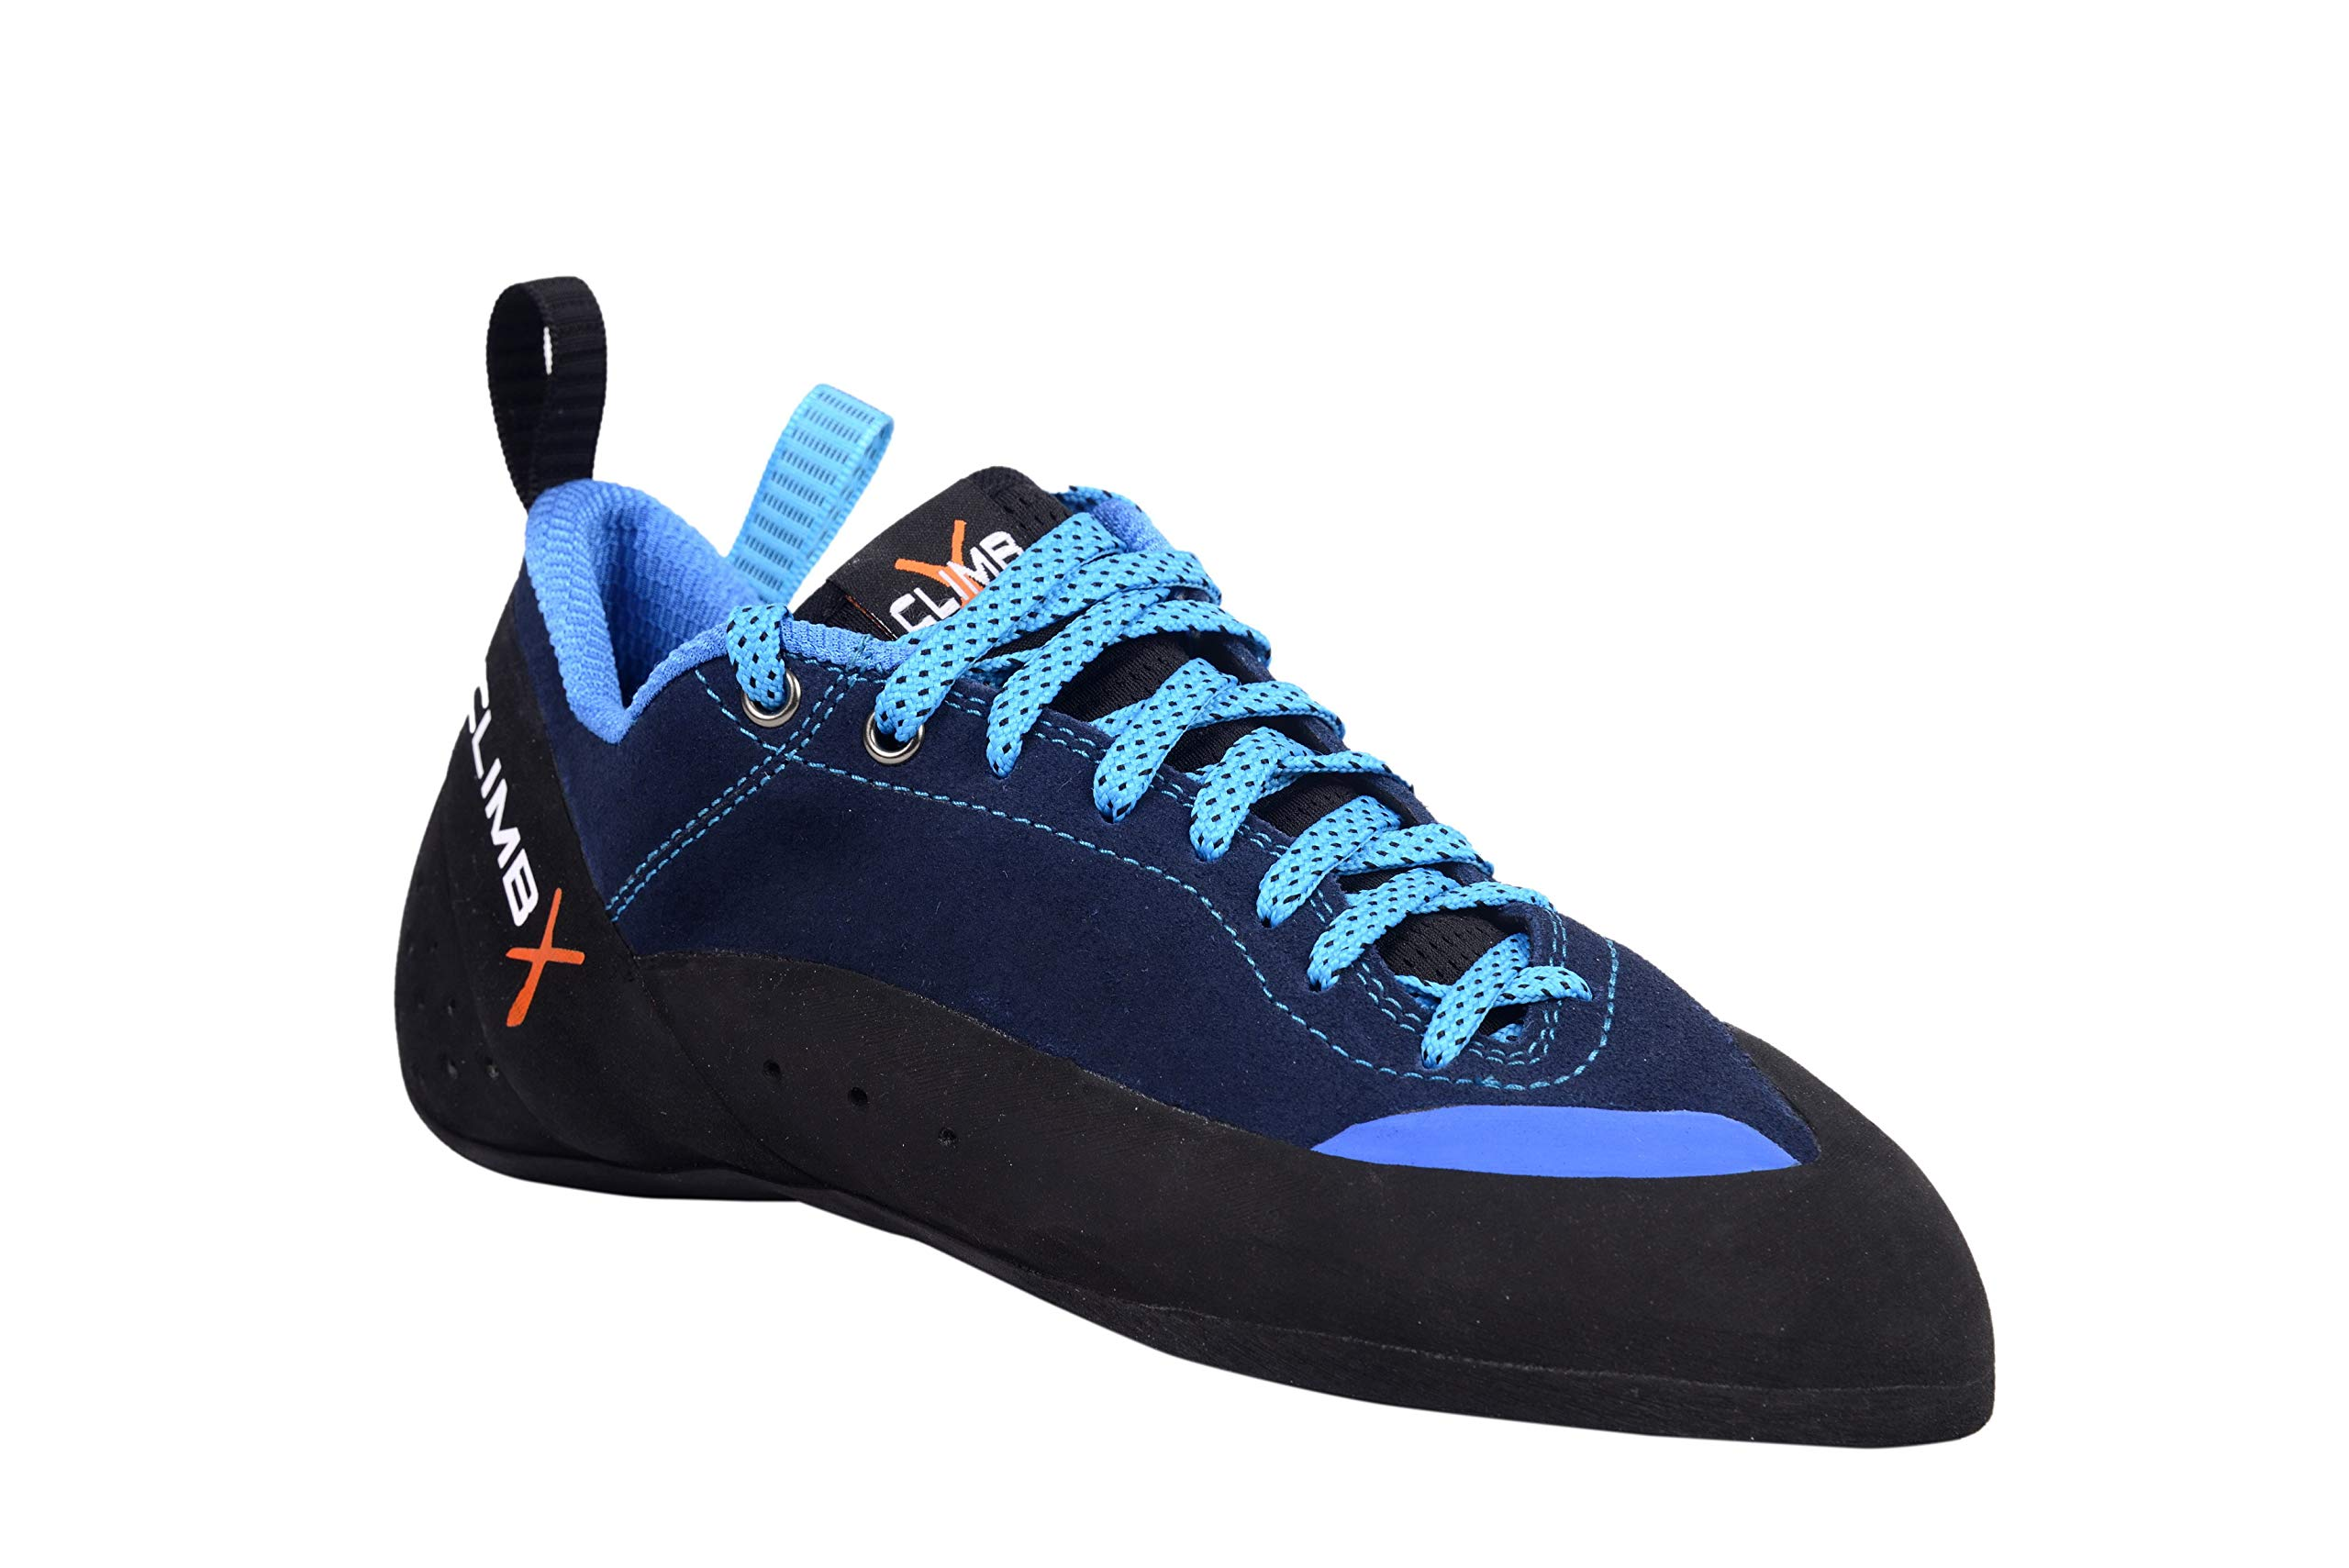 Climb X Crush Lace - Blue - 2019 Rock Climbing/Bouldering Shoe (10) by Climb X